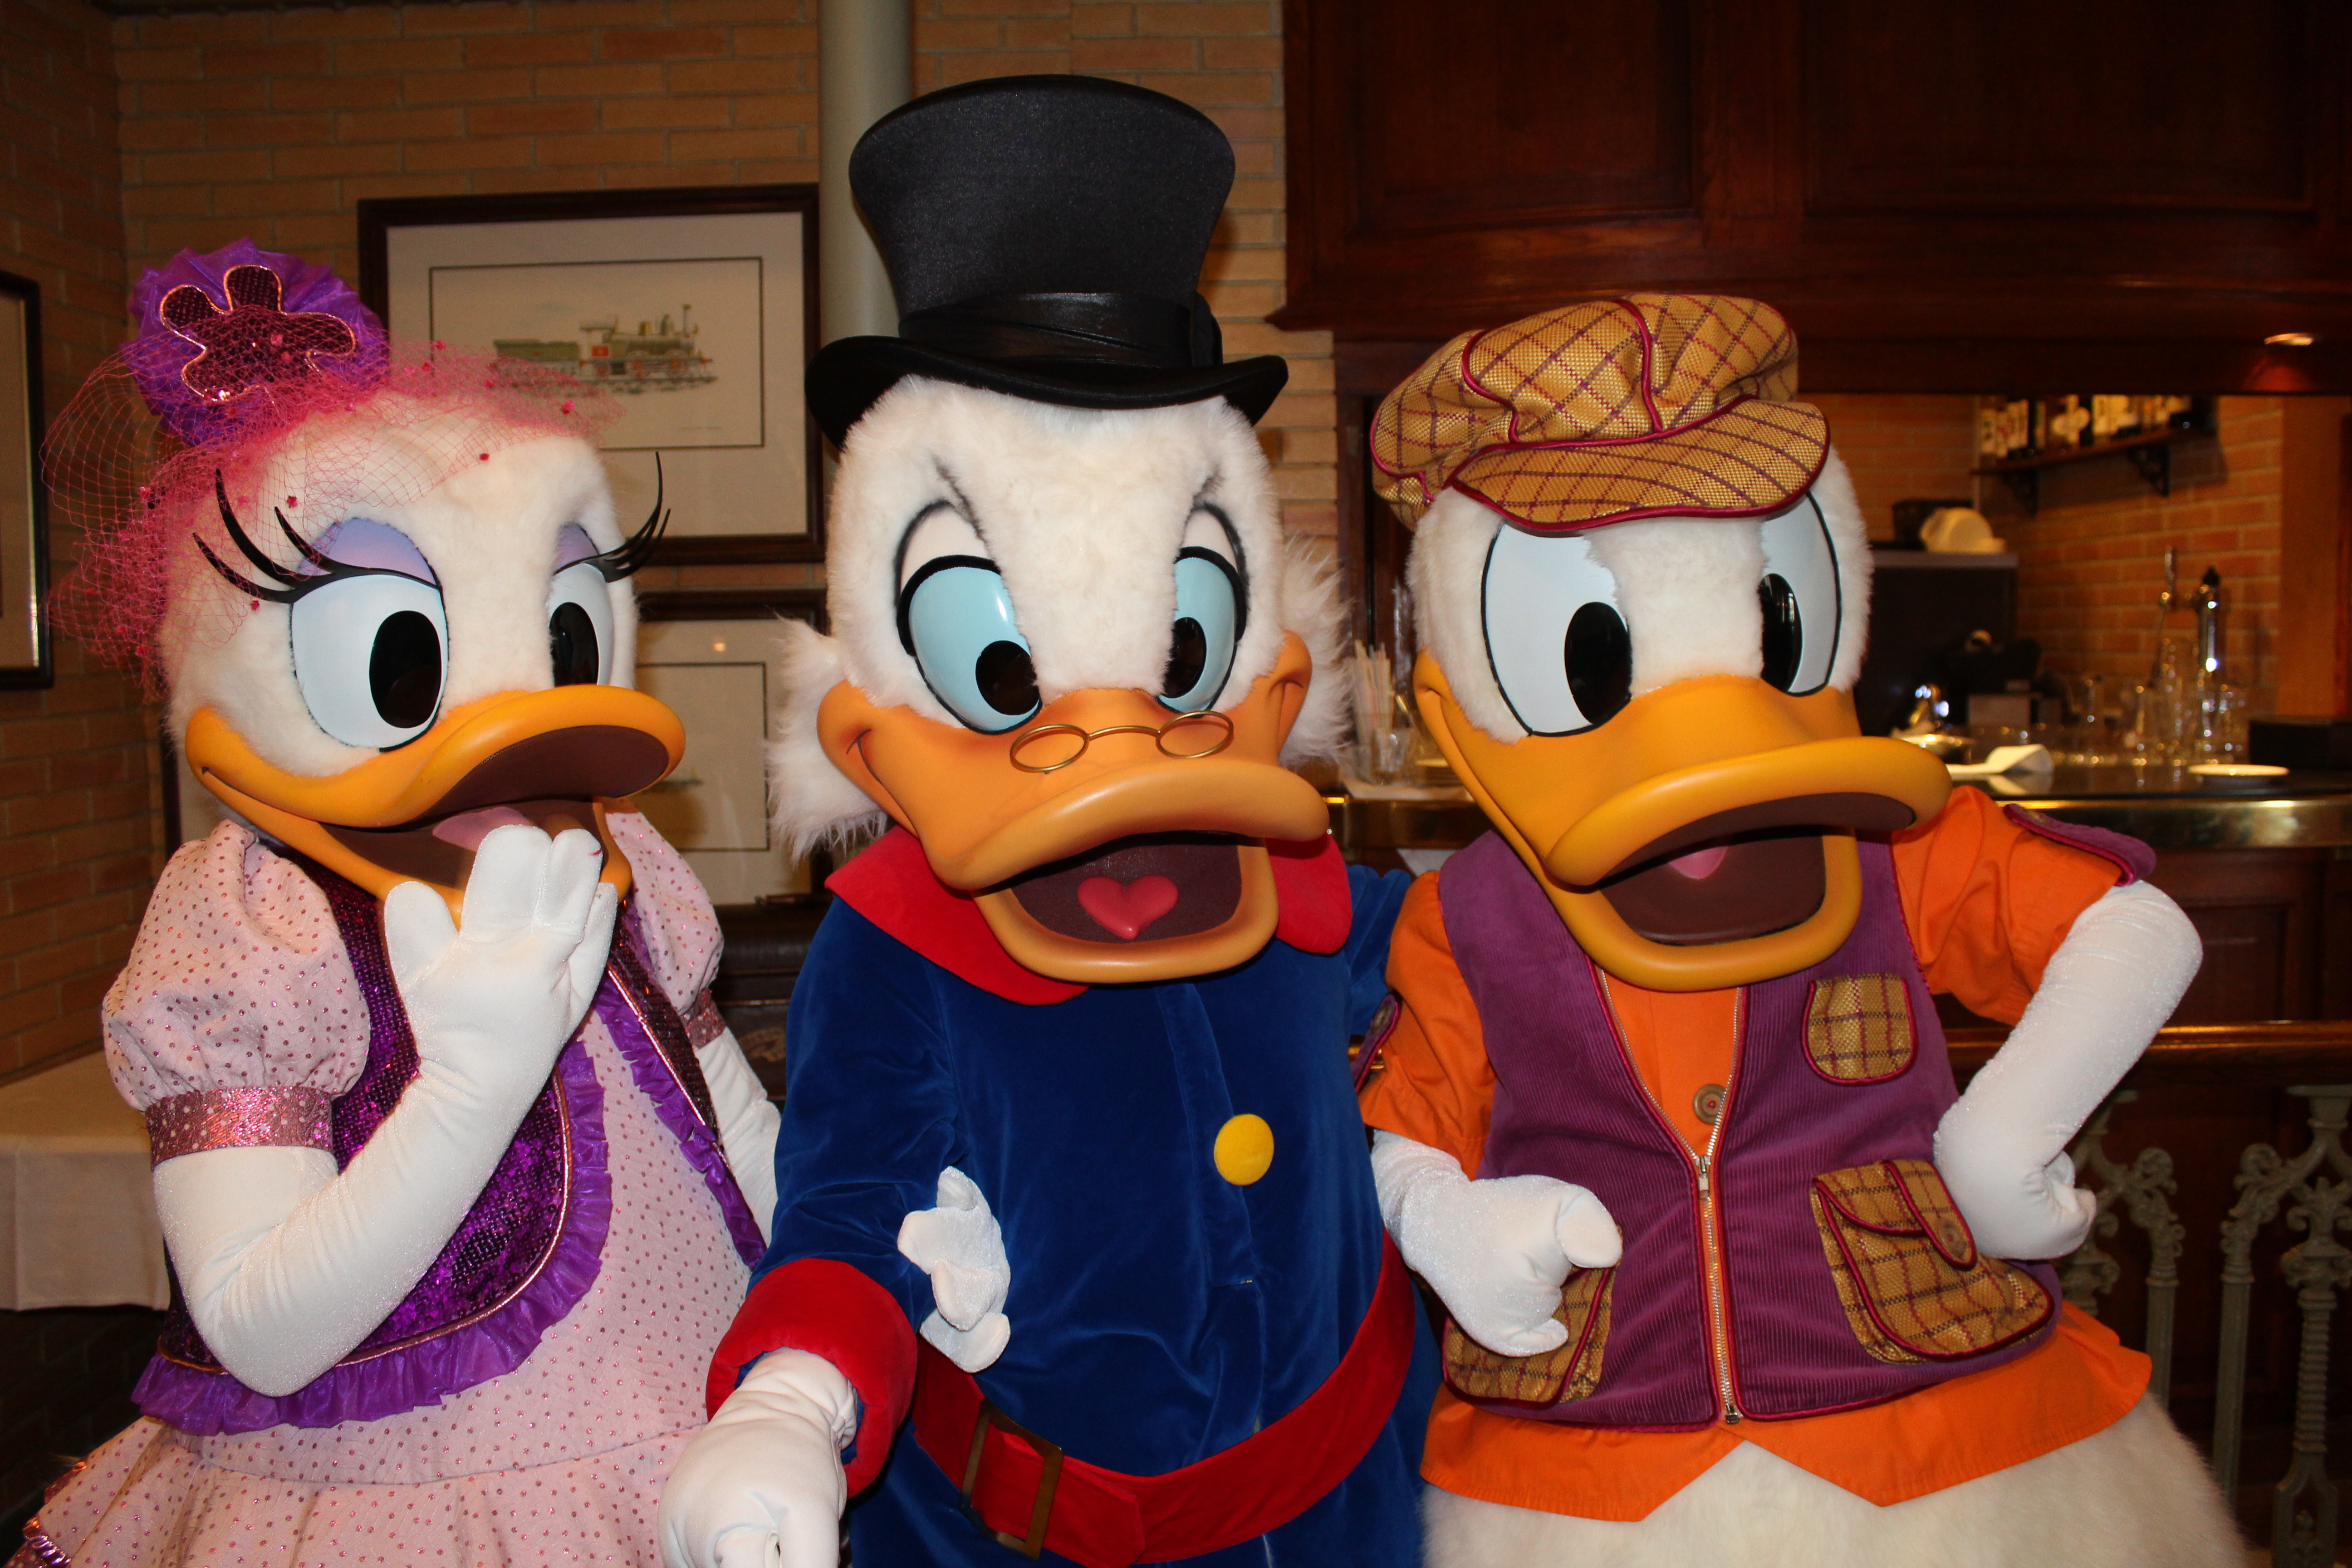 Daisy, Scrooge, and Donald